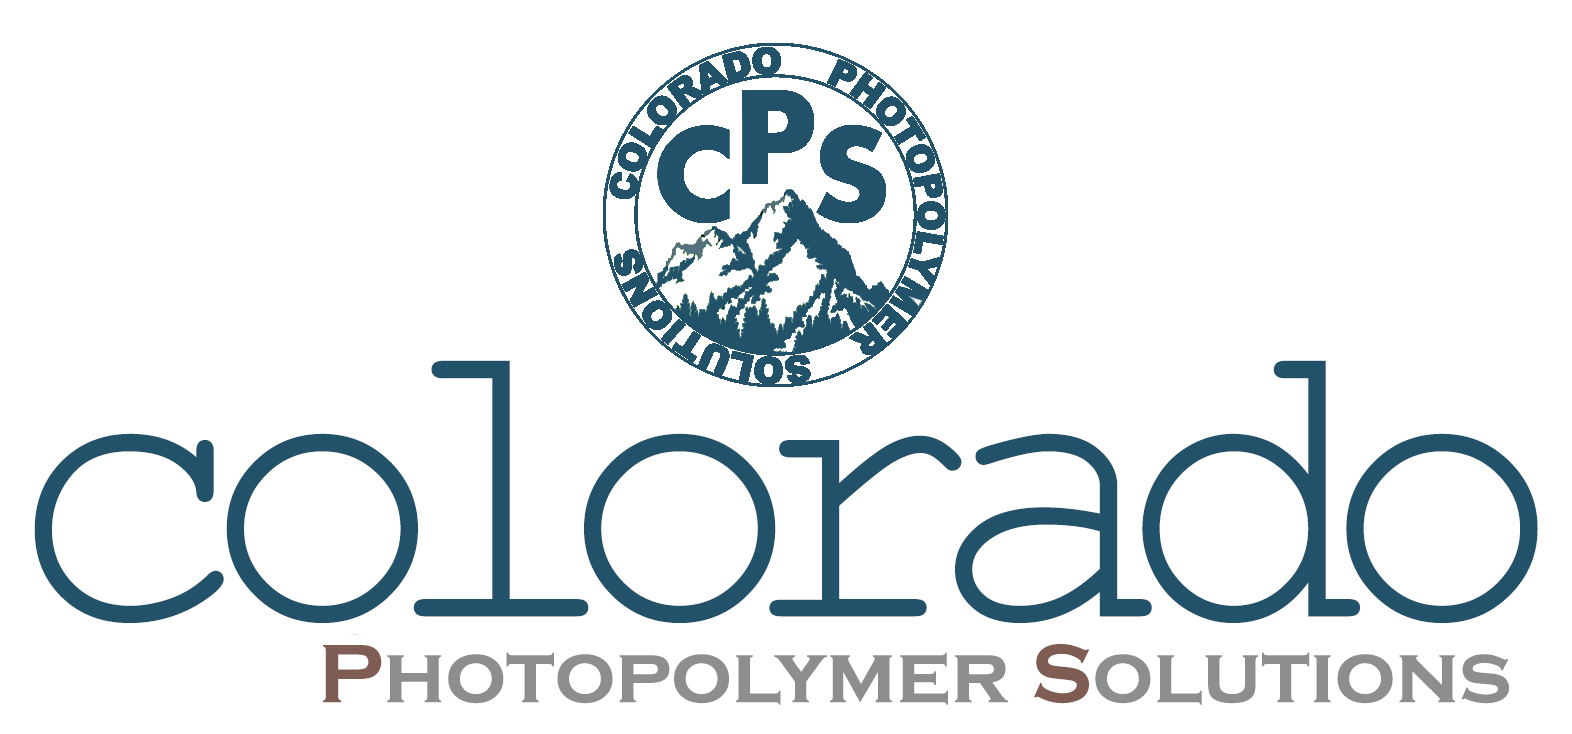 COLORADO PHOTOPOYLMER SOLUTIONS